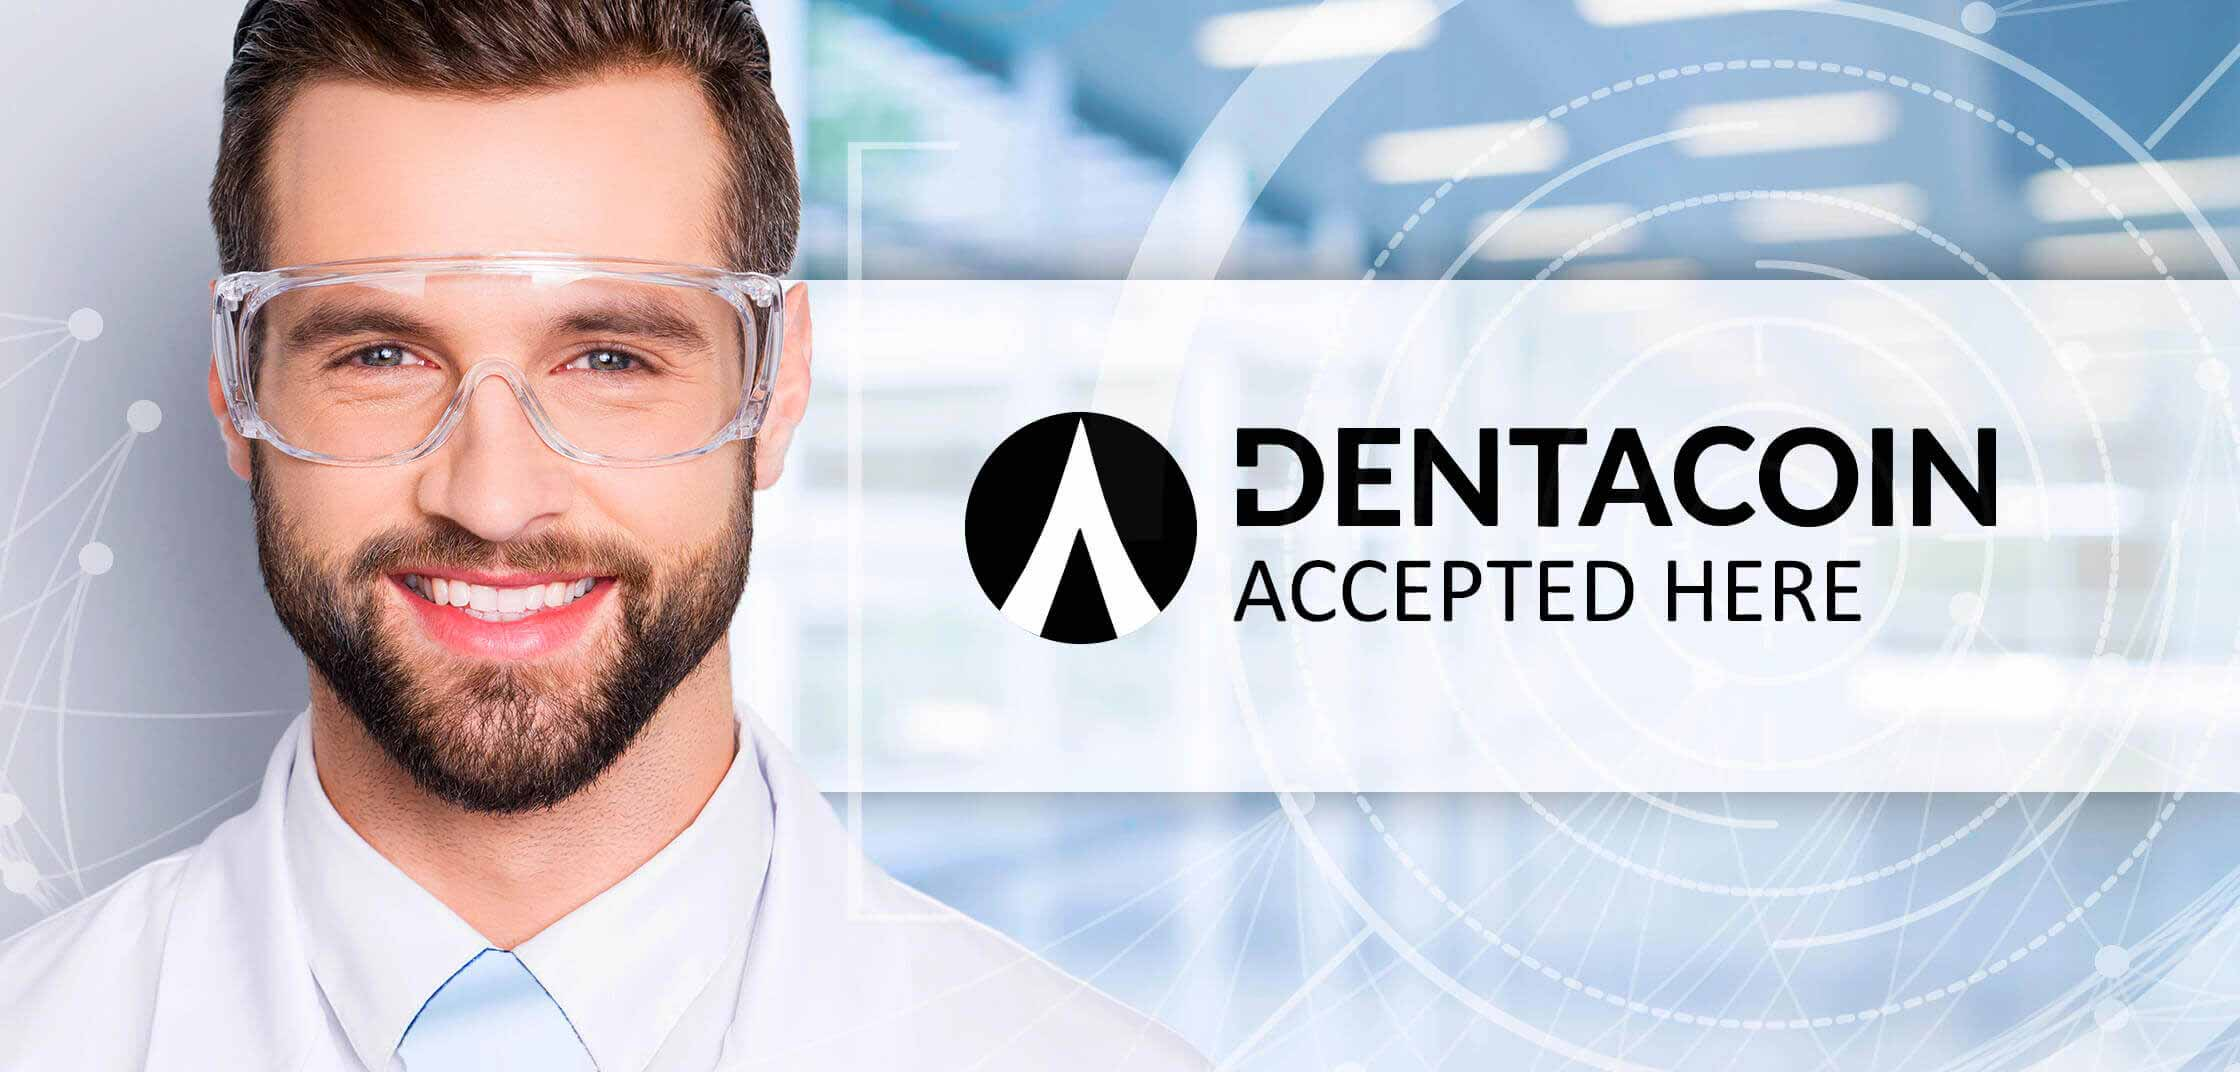 Dentacoin accepted here